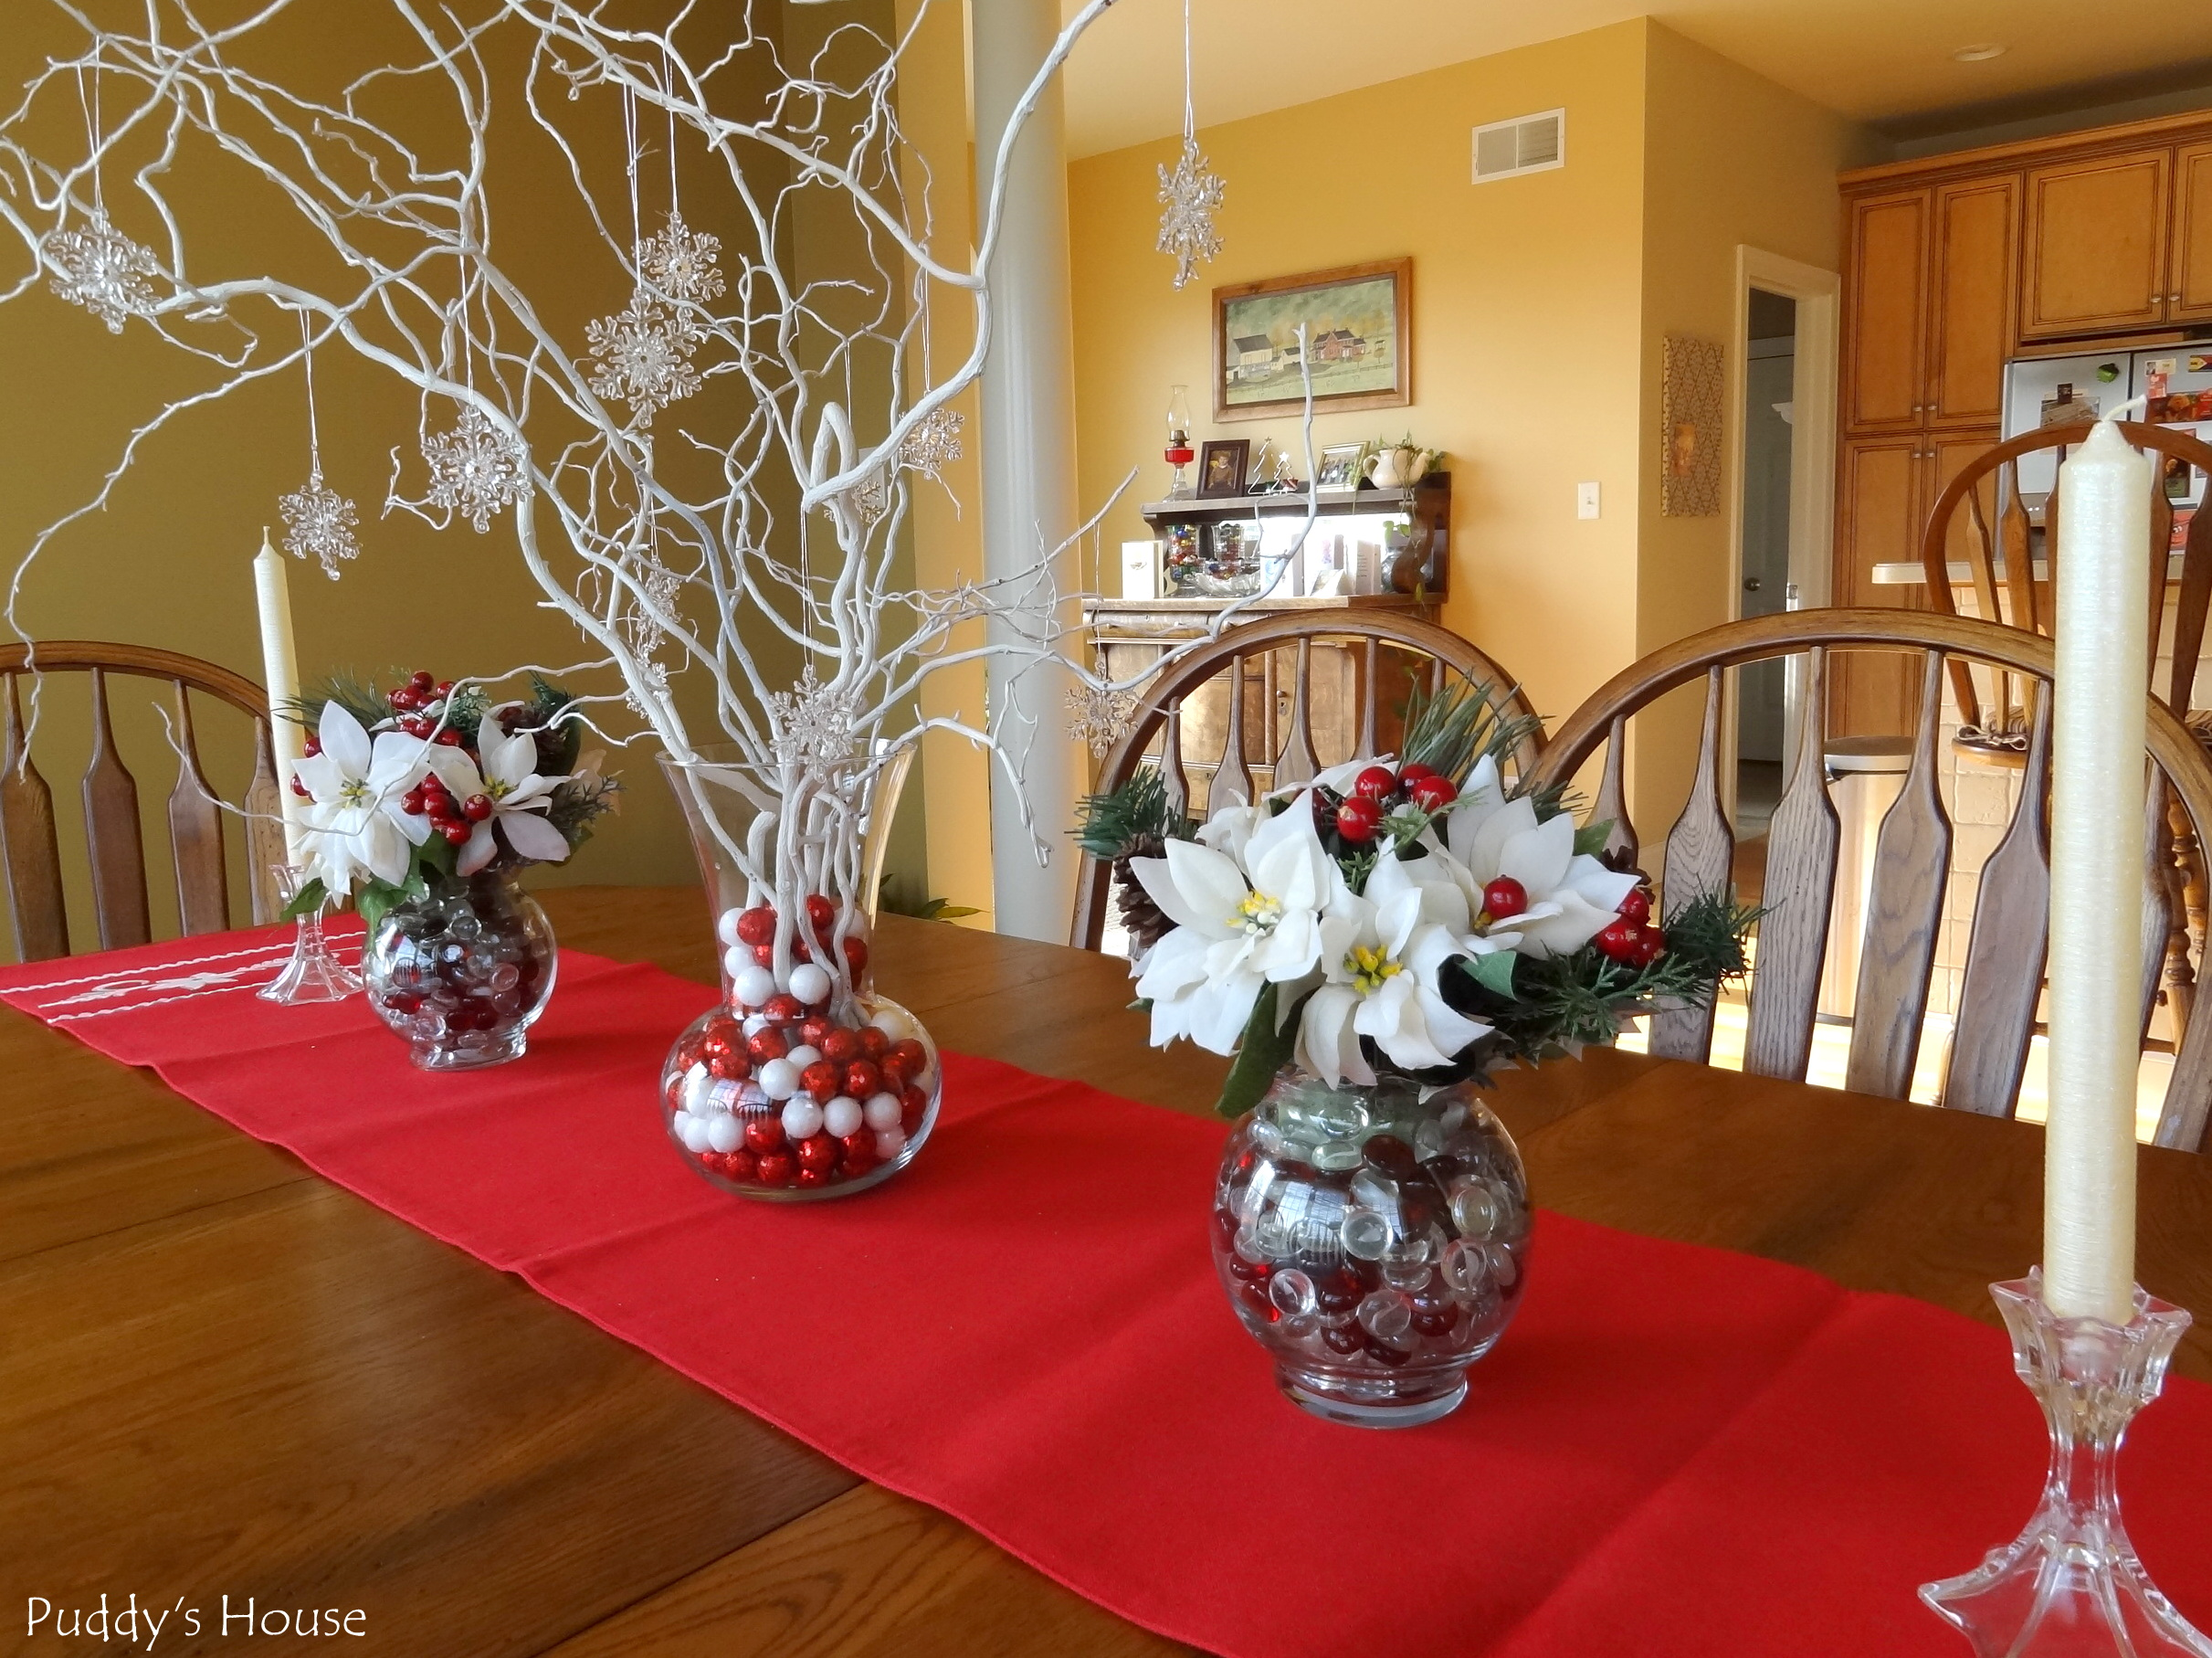 Christmas Diy Centerpieces Sprayed Branches With Snowflakes Poinsettias And Candlesticks